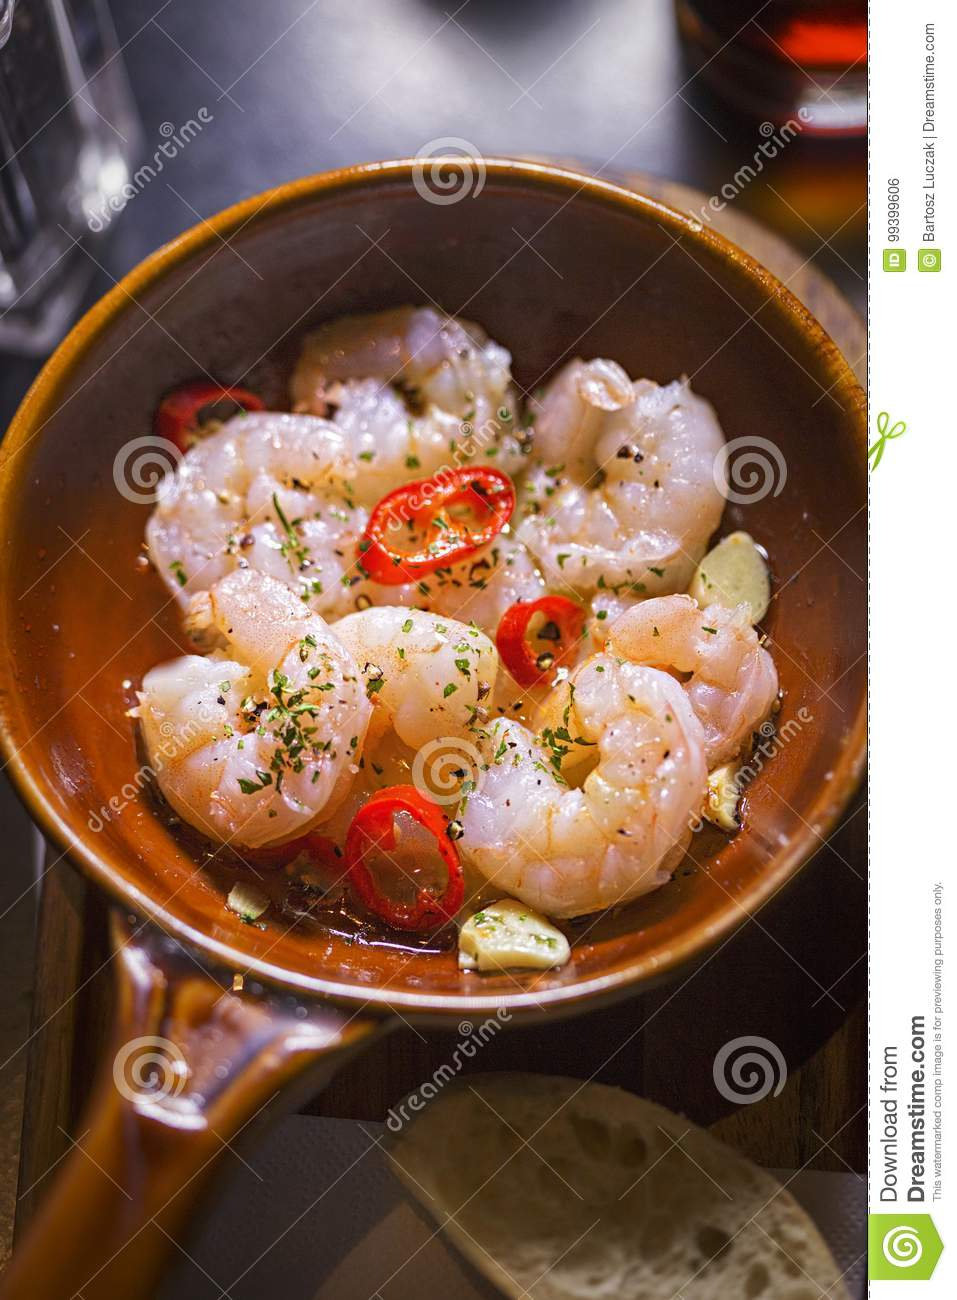 Gambas Al Ajillo Prawns Cooked In Virgin Oil With Garlic And Chilli Stock Photo Image Of Peppersn Delicious 99399606